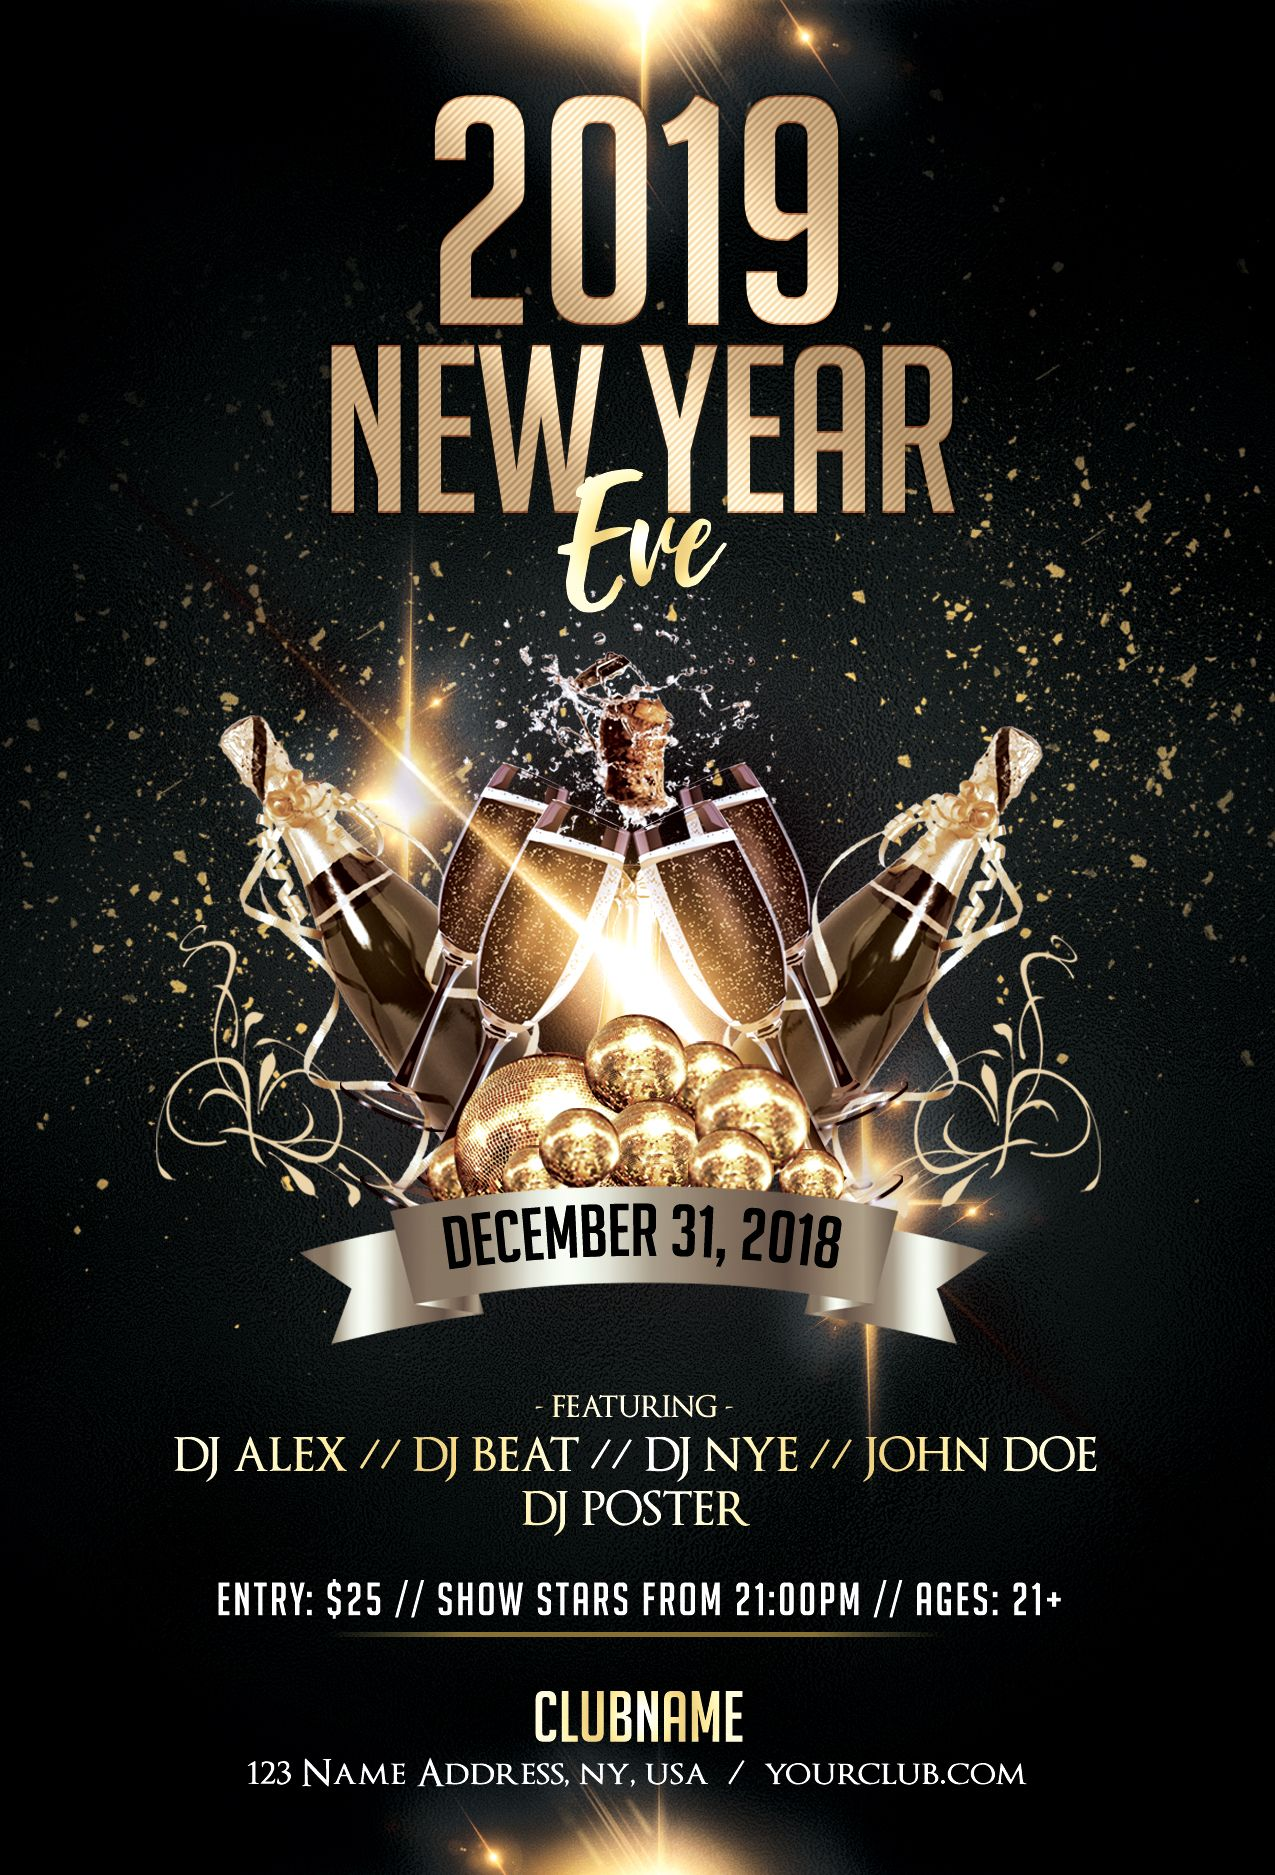 2019 New Year Eve - Luxury Free PSD Flyer Template | Free psd flyer templates, New year's eve ...